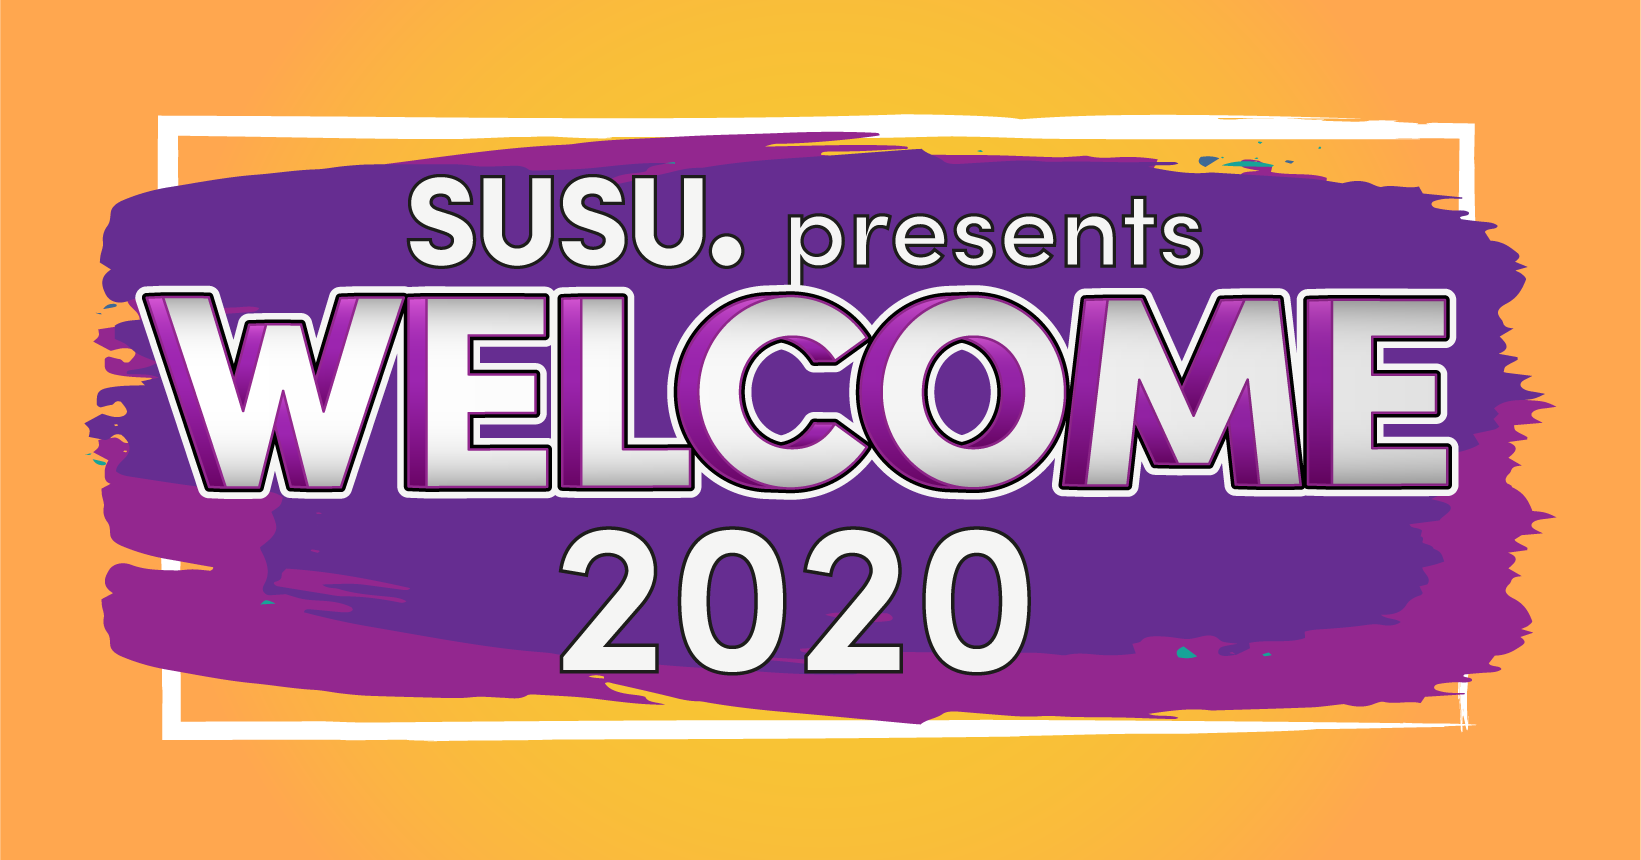 Image of Welcome 2020: everything you need to know!